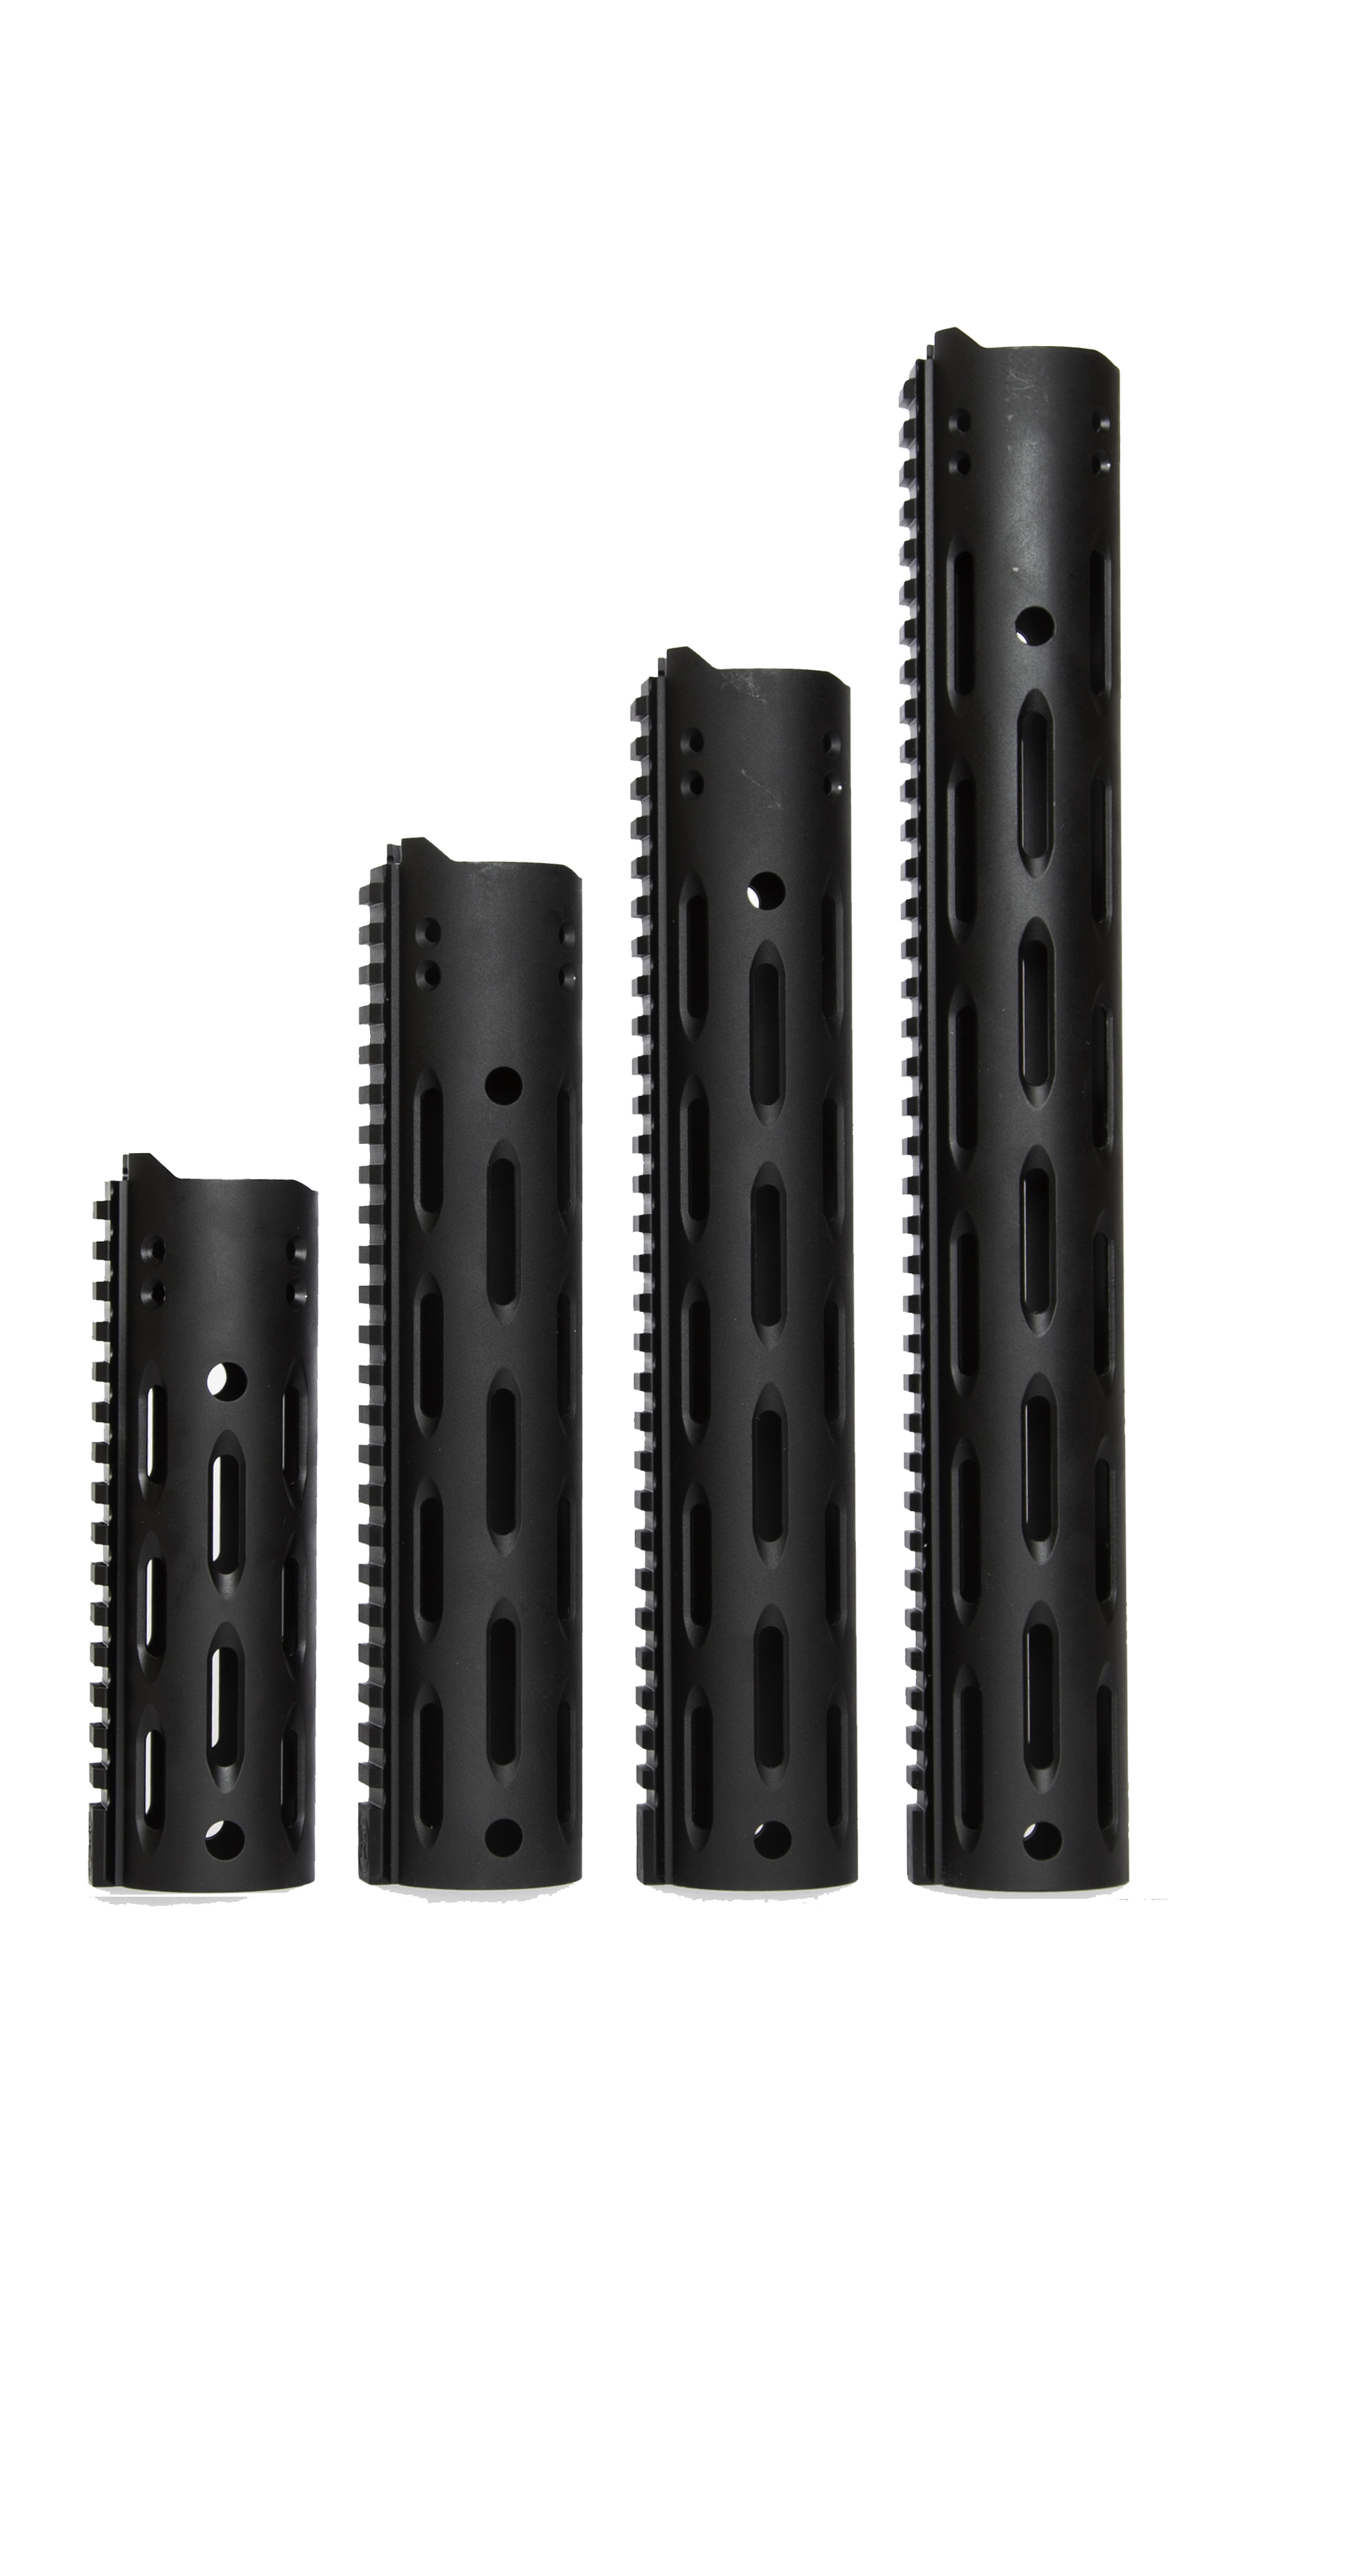 Fgs Security radical firearms forward guard shield round rail system (fgs)